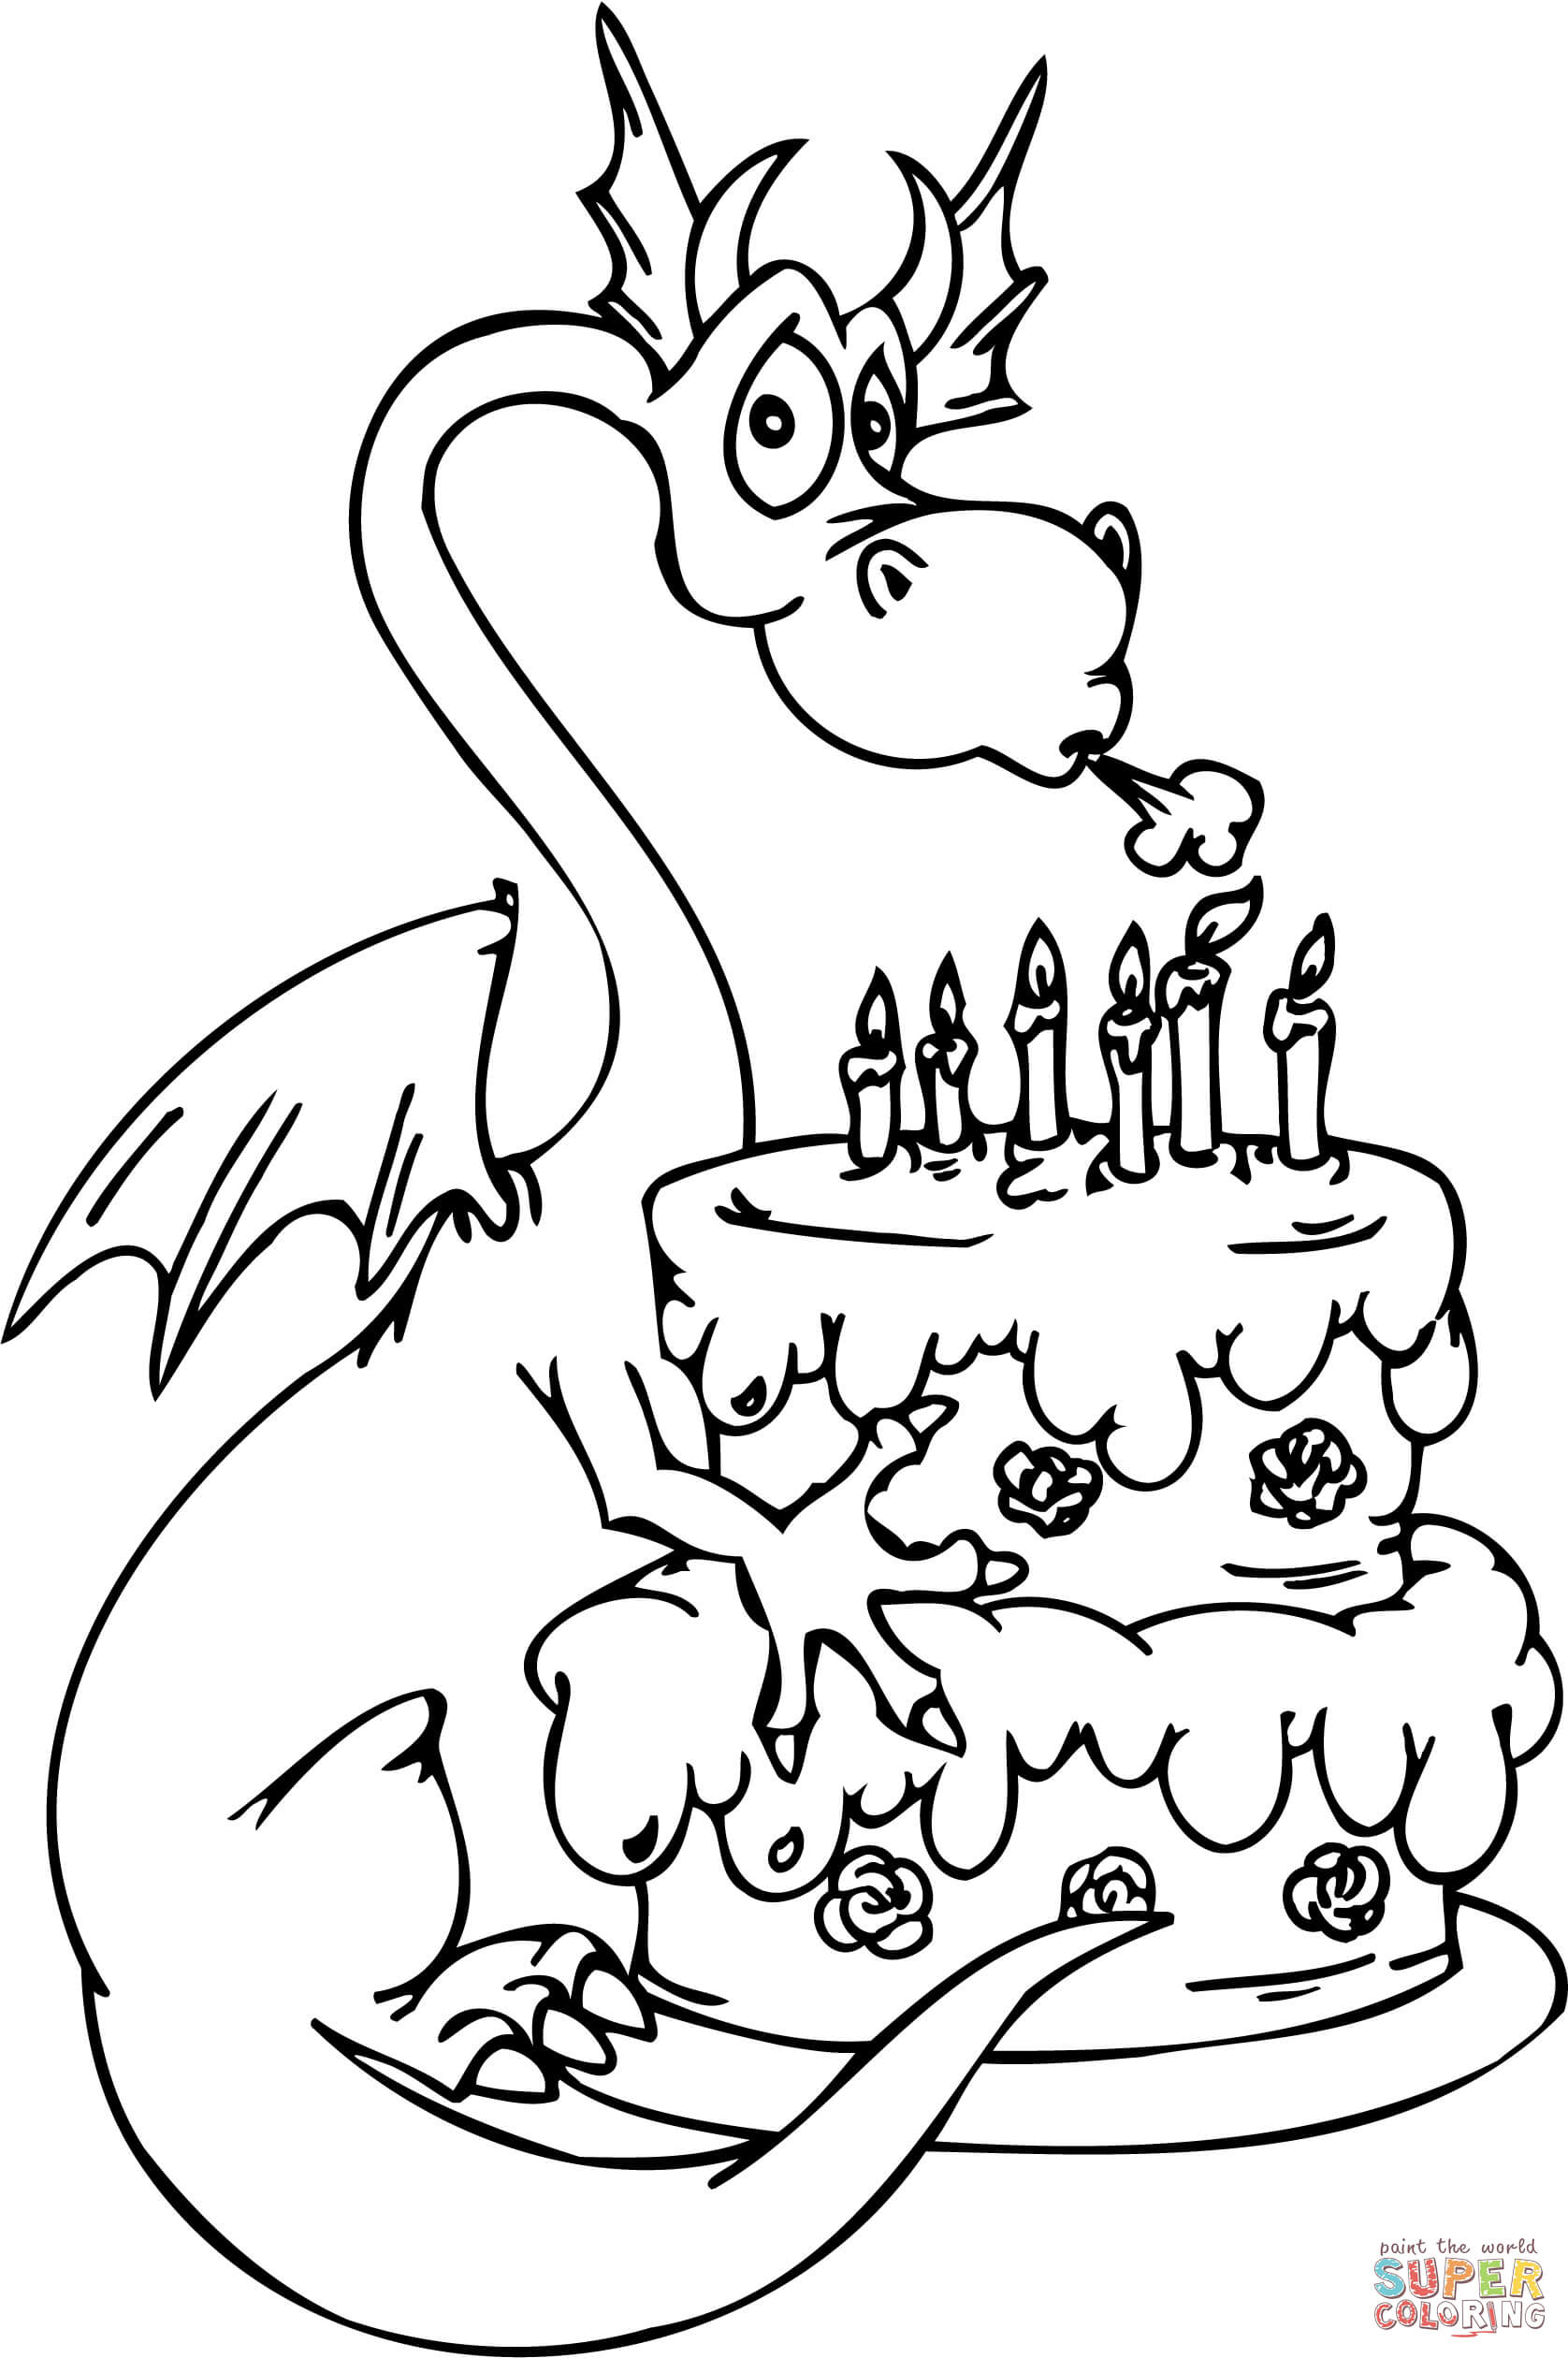 Dragon With Happy Birthday Cake Coloring Page Free Printable